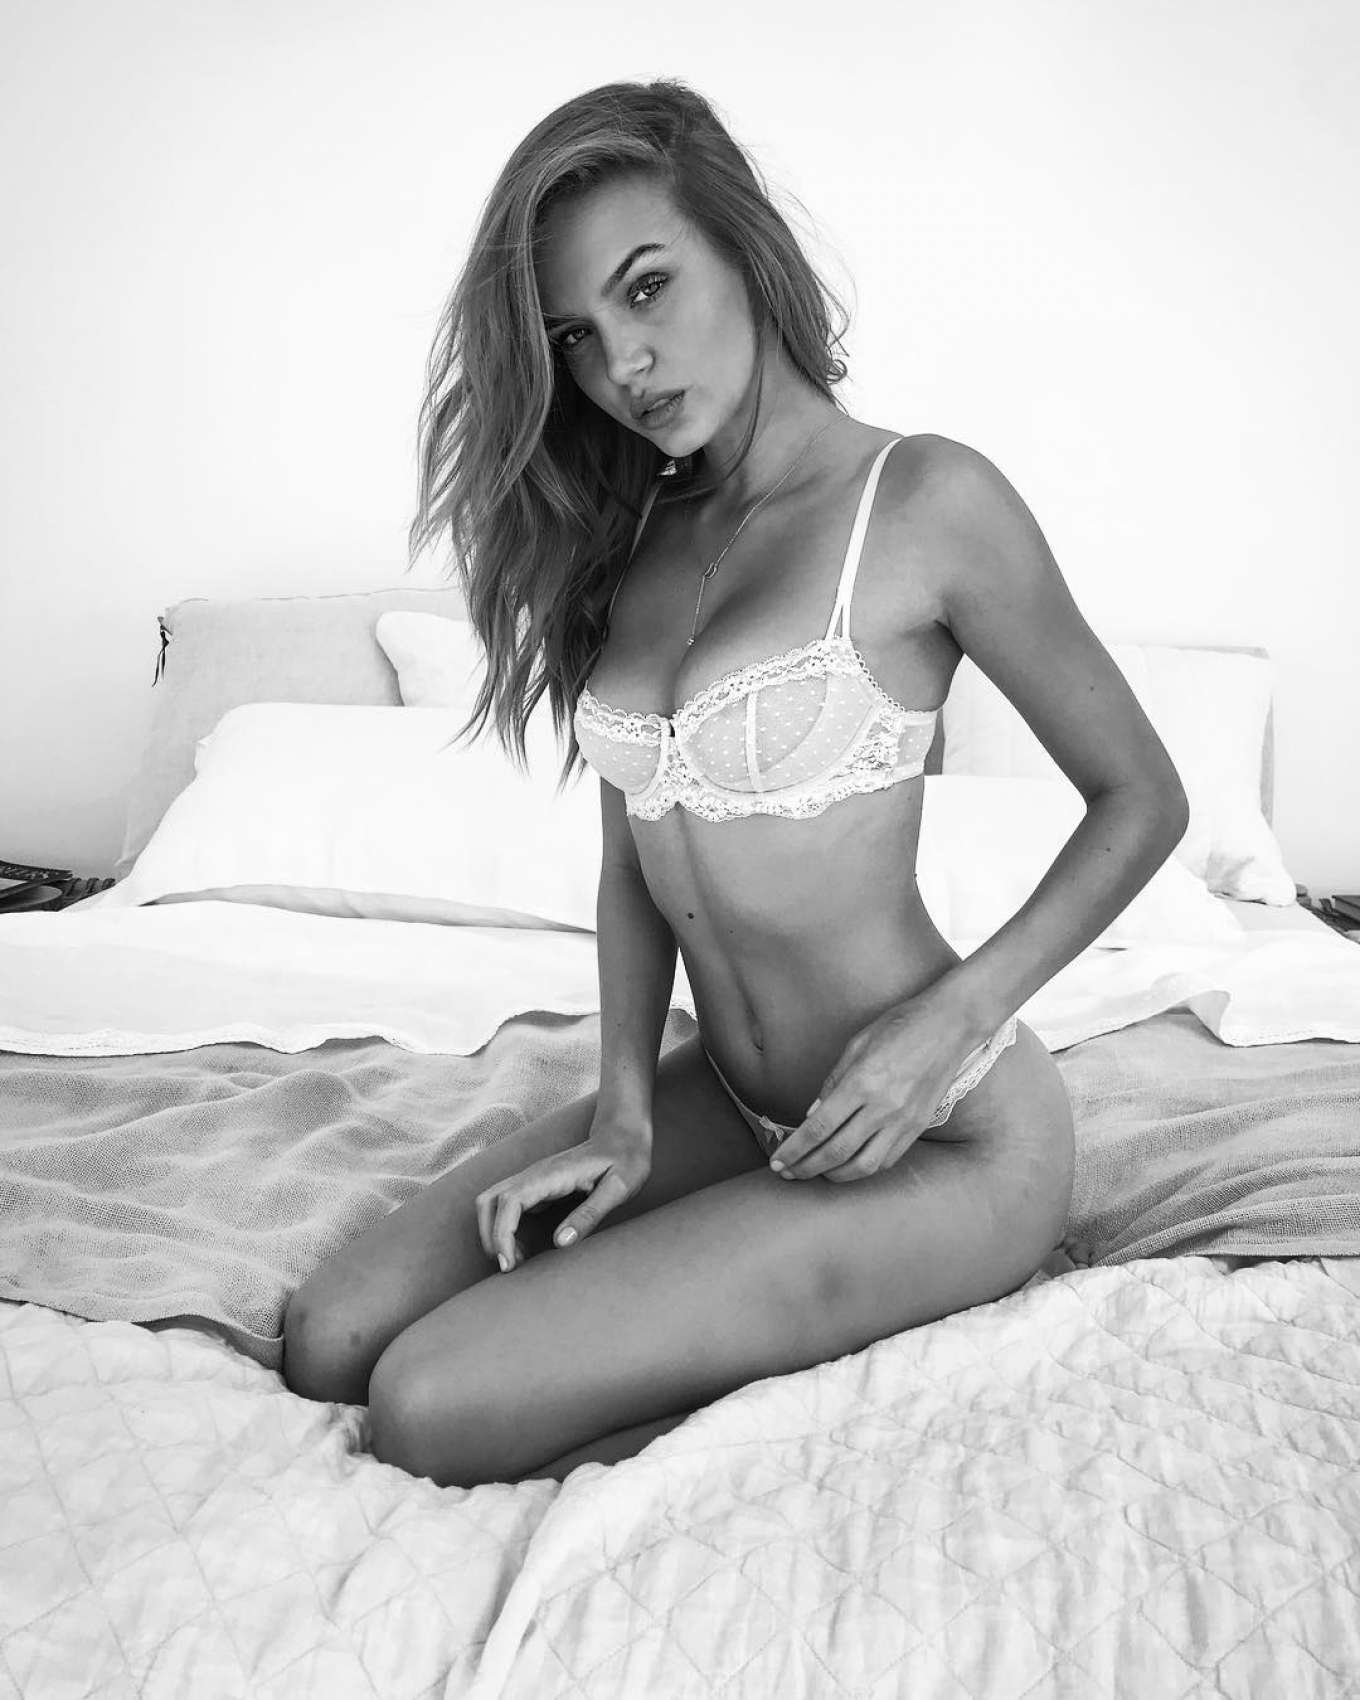 Hot Josephine Skriver naked (38 foto and video), Tits, Paparazzi, Selfie, braless 2020